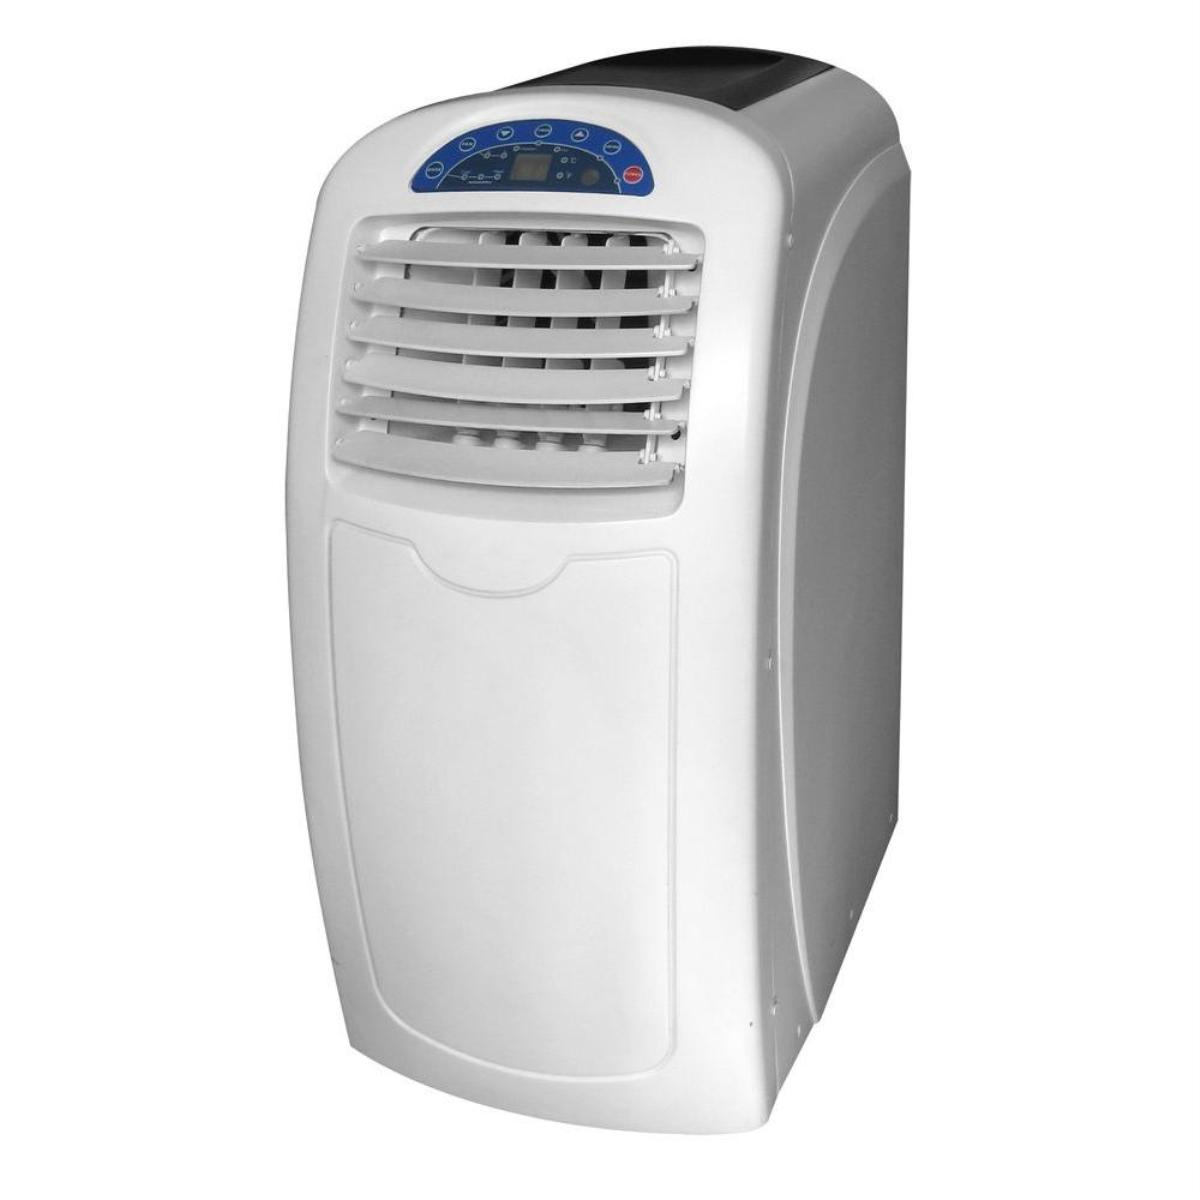 BTU Portable Evaporative Air Conditioner Dehumidifier PE6 10R 03 #2A4473